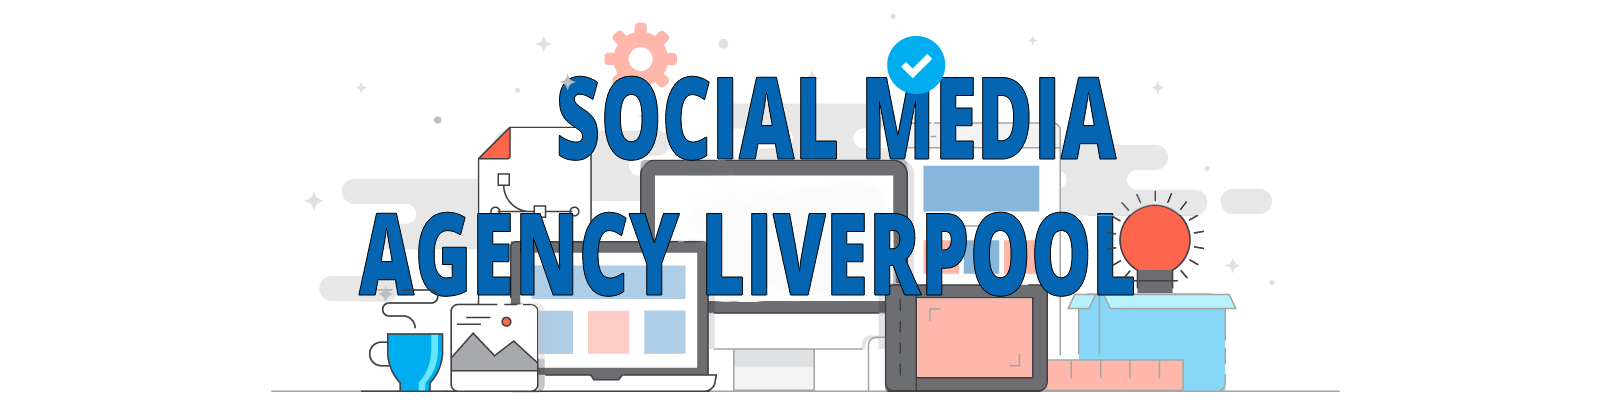 social media agency liverpool header with transparent background